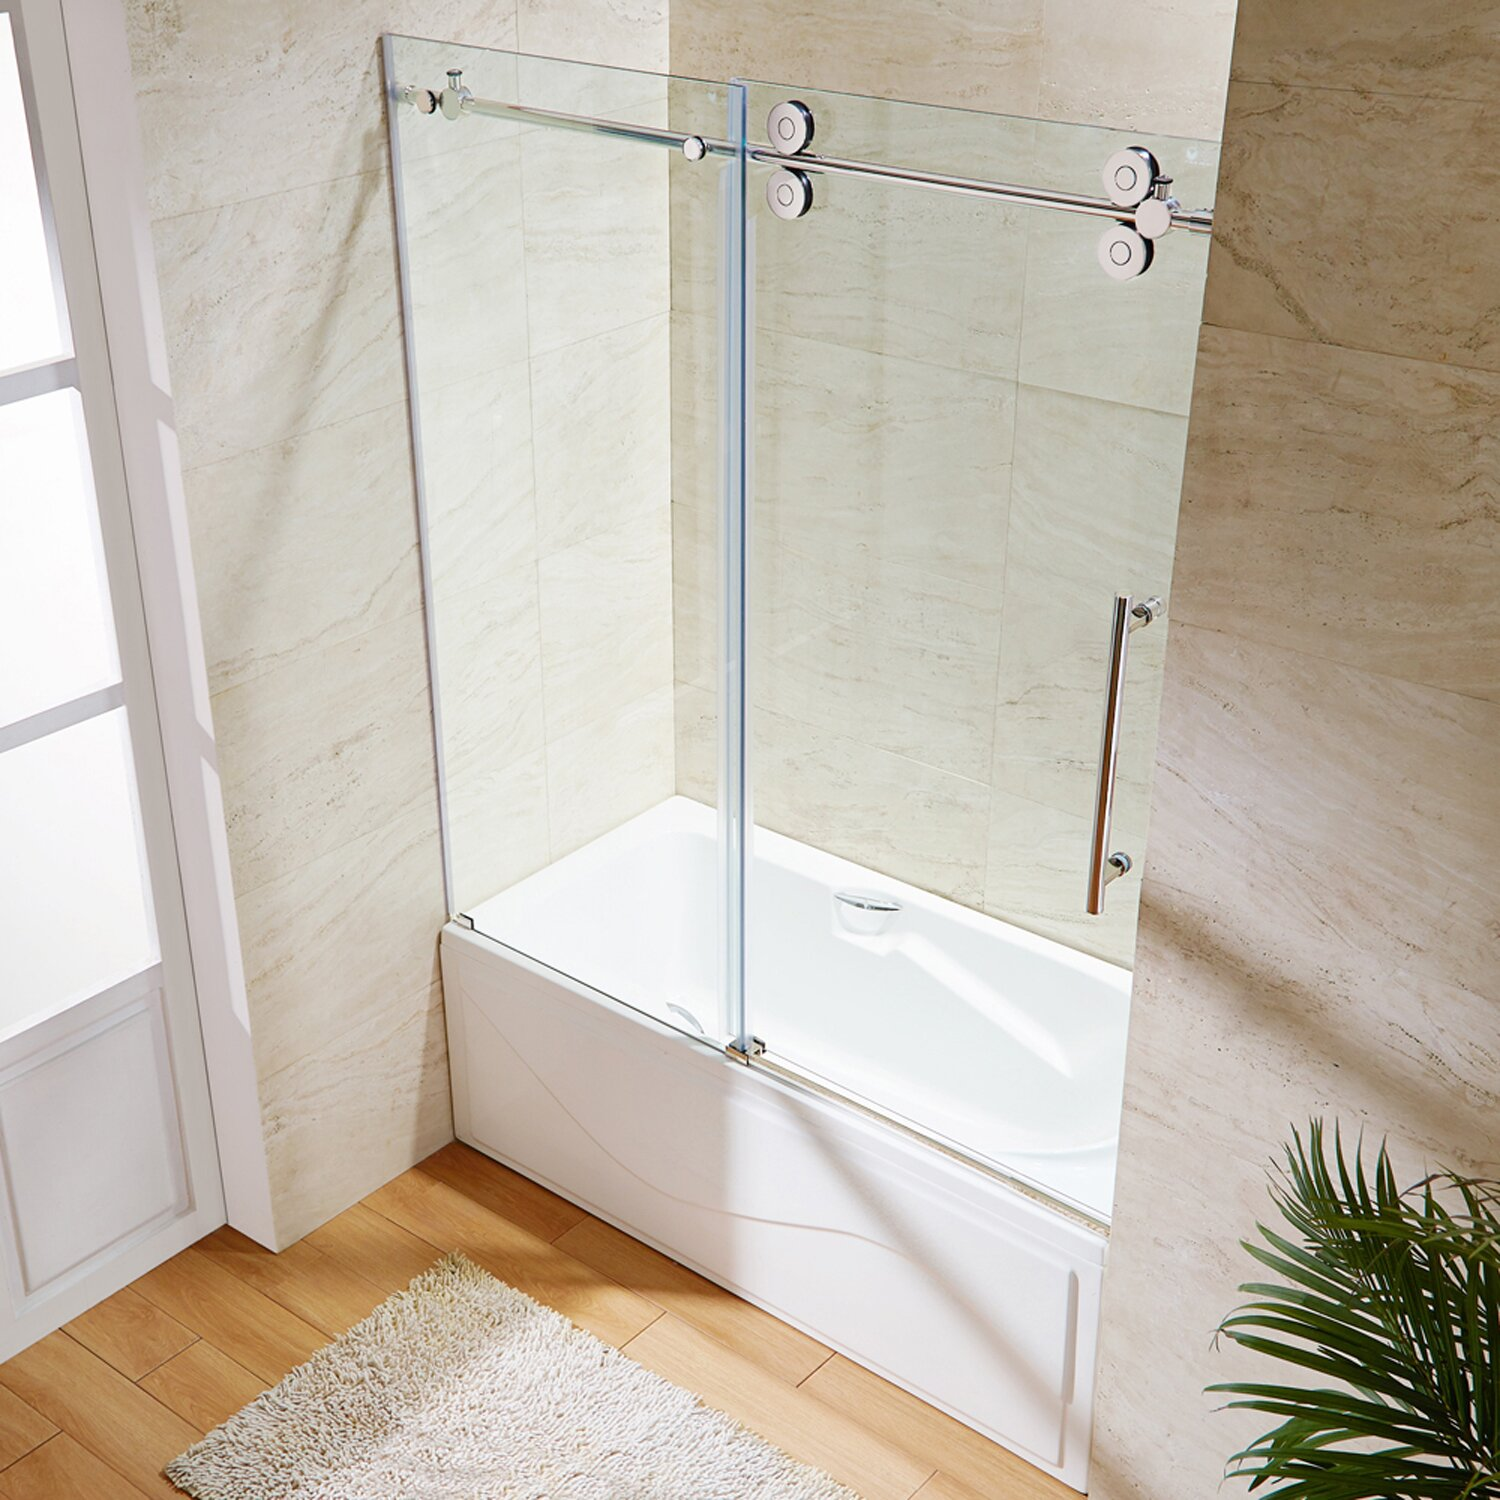 VIGO Elan X Single Sliding Frameless Tub Door Reviews 66 tub shower  comboShower Bathtub Combinations 66 Breathtaking Project For Tub Shower66 Tub Shower Combo  Tub and Shower One Piece  99 Small Bathroom  . 60 Tub Shower Combo. Home Design Ideas